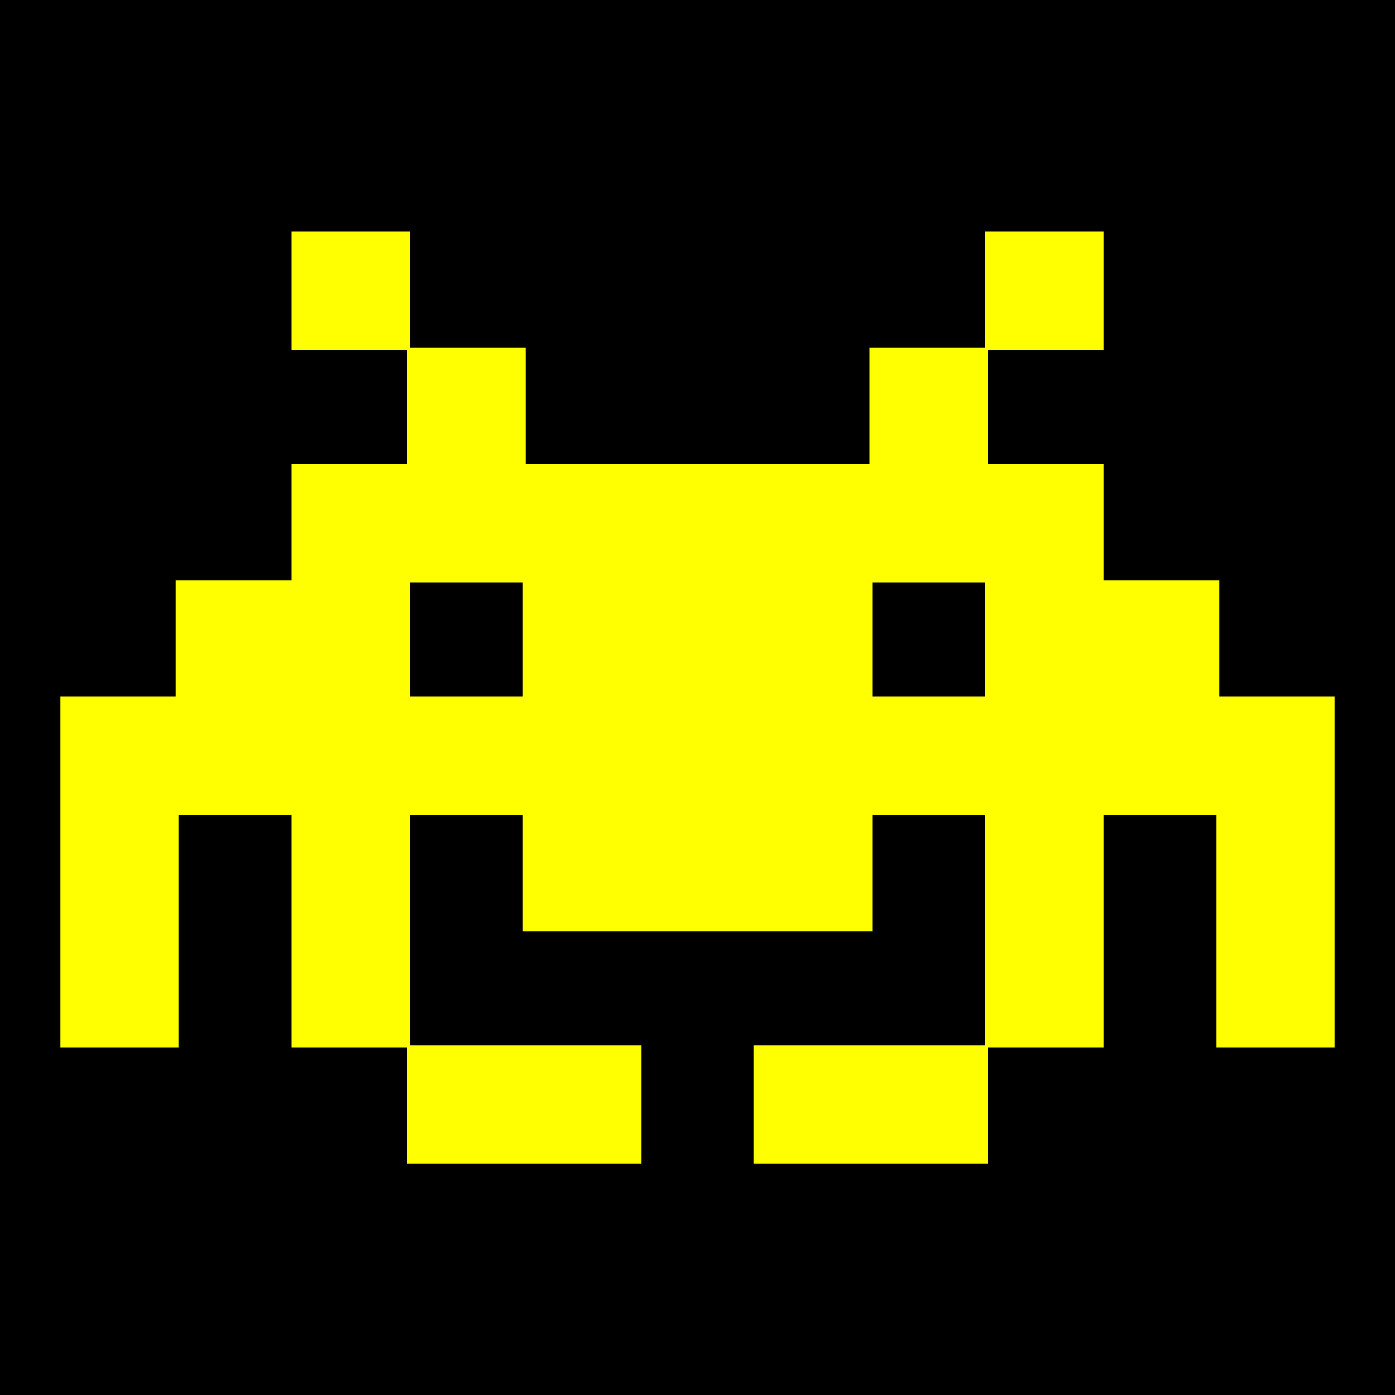 space invaders com